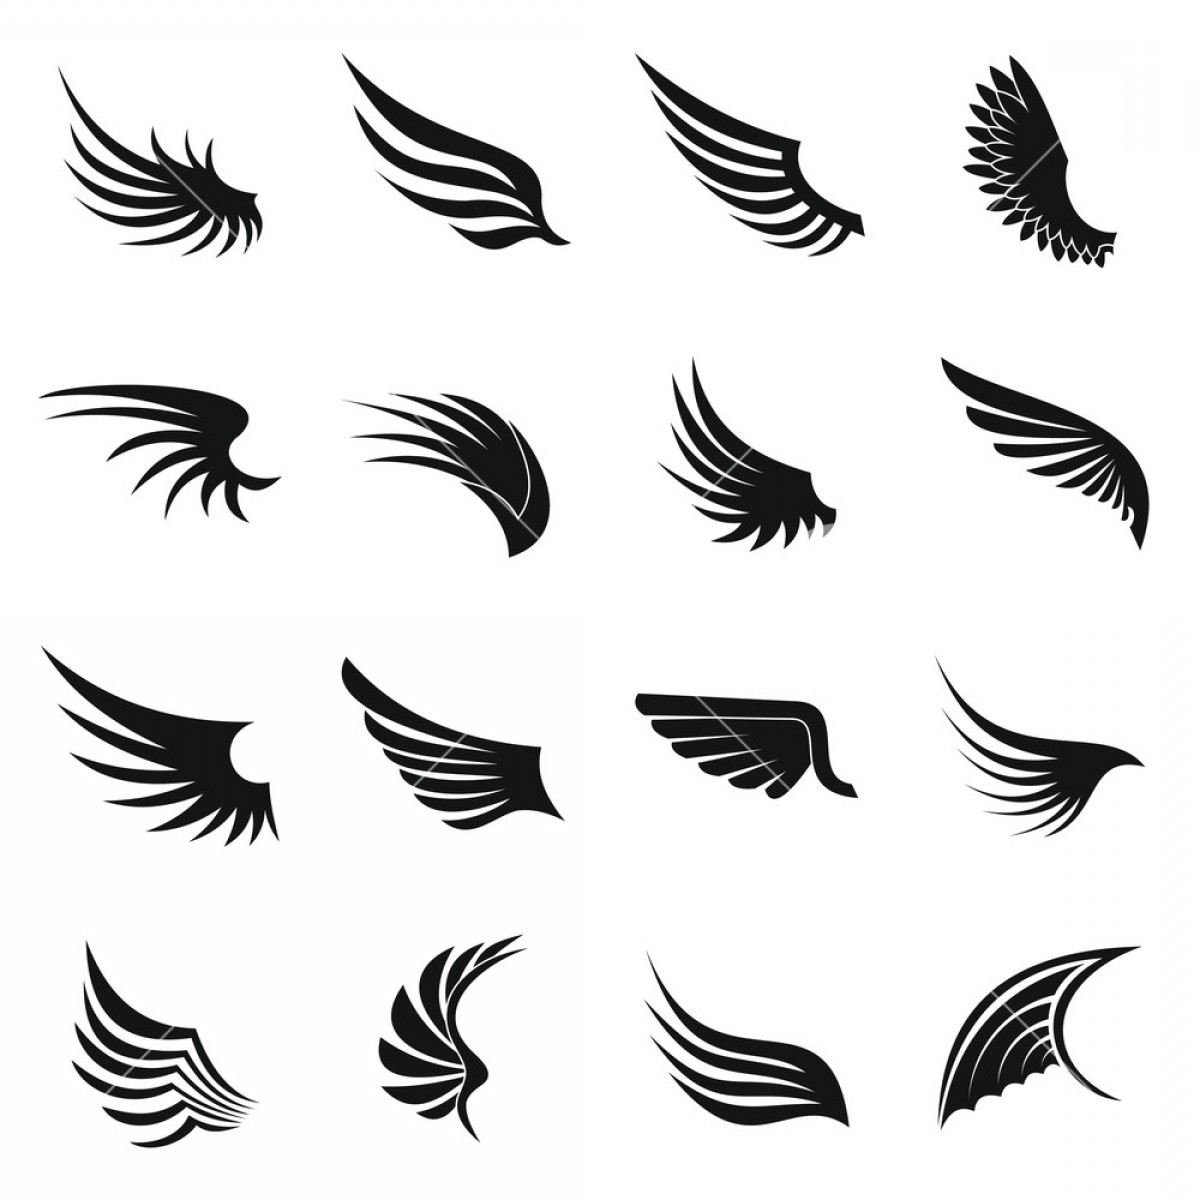 Angel Wings Tattoo Tribal Vector: Wing Icons Set In Simple Ctyle Birds And Angel Wings Set Collection Vector Illustration B Xeadlzjzjfkqrwm